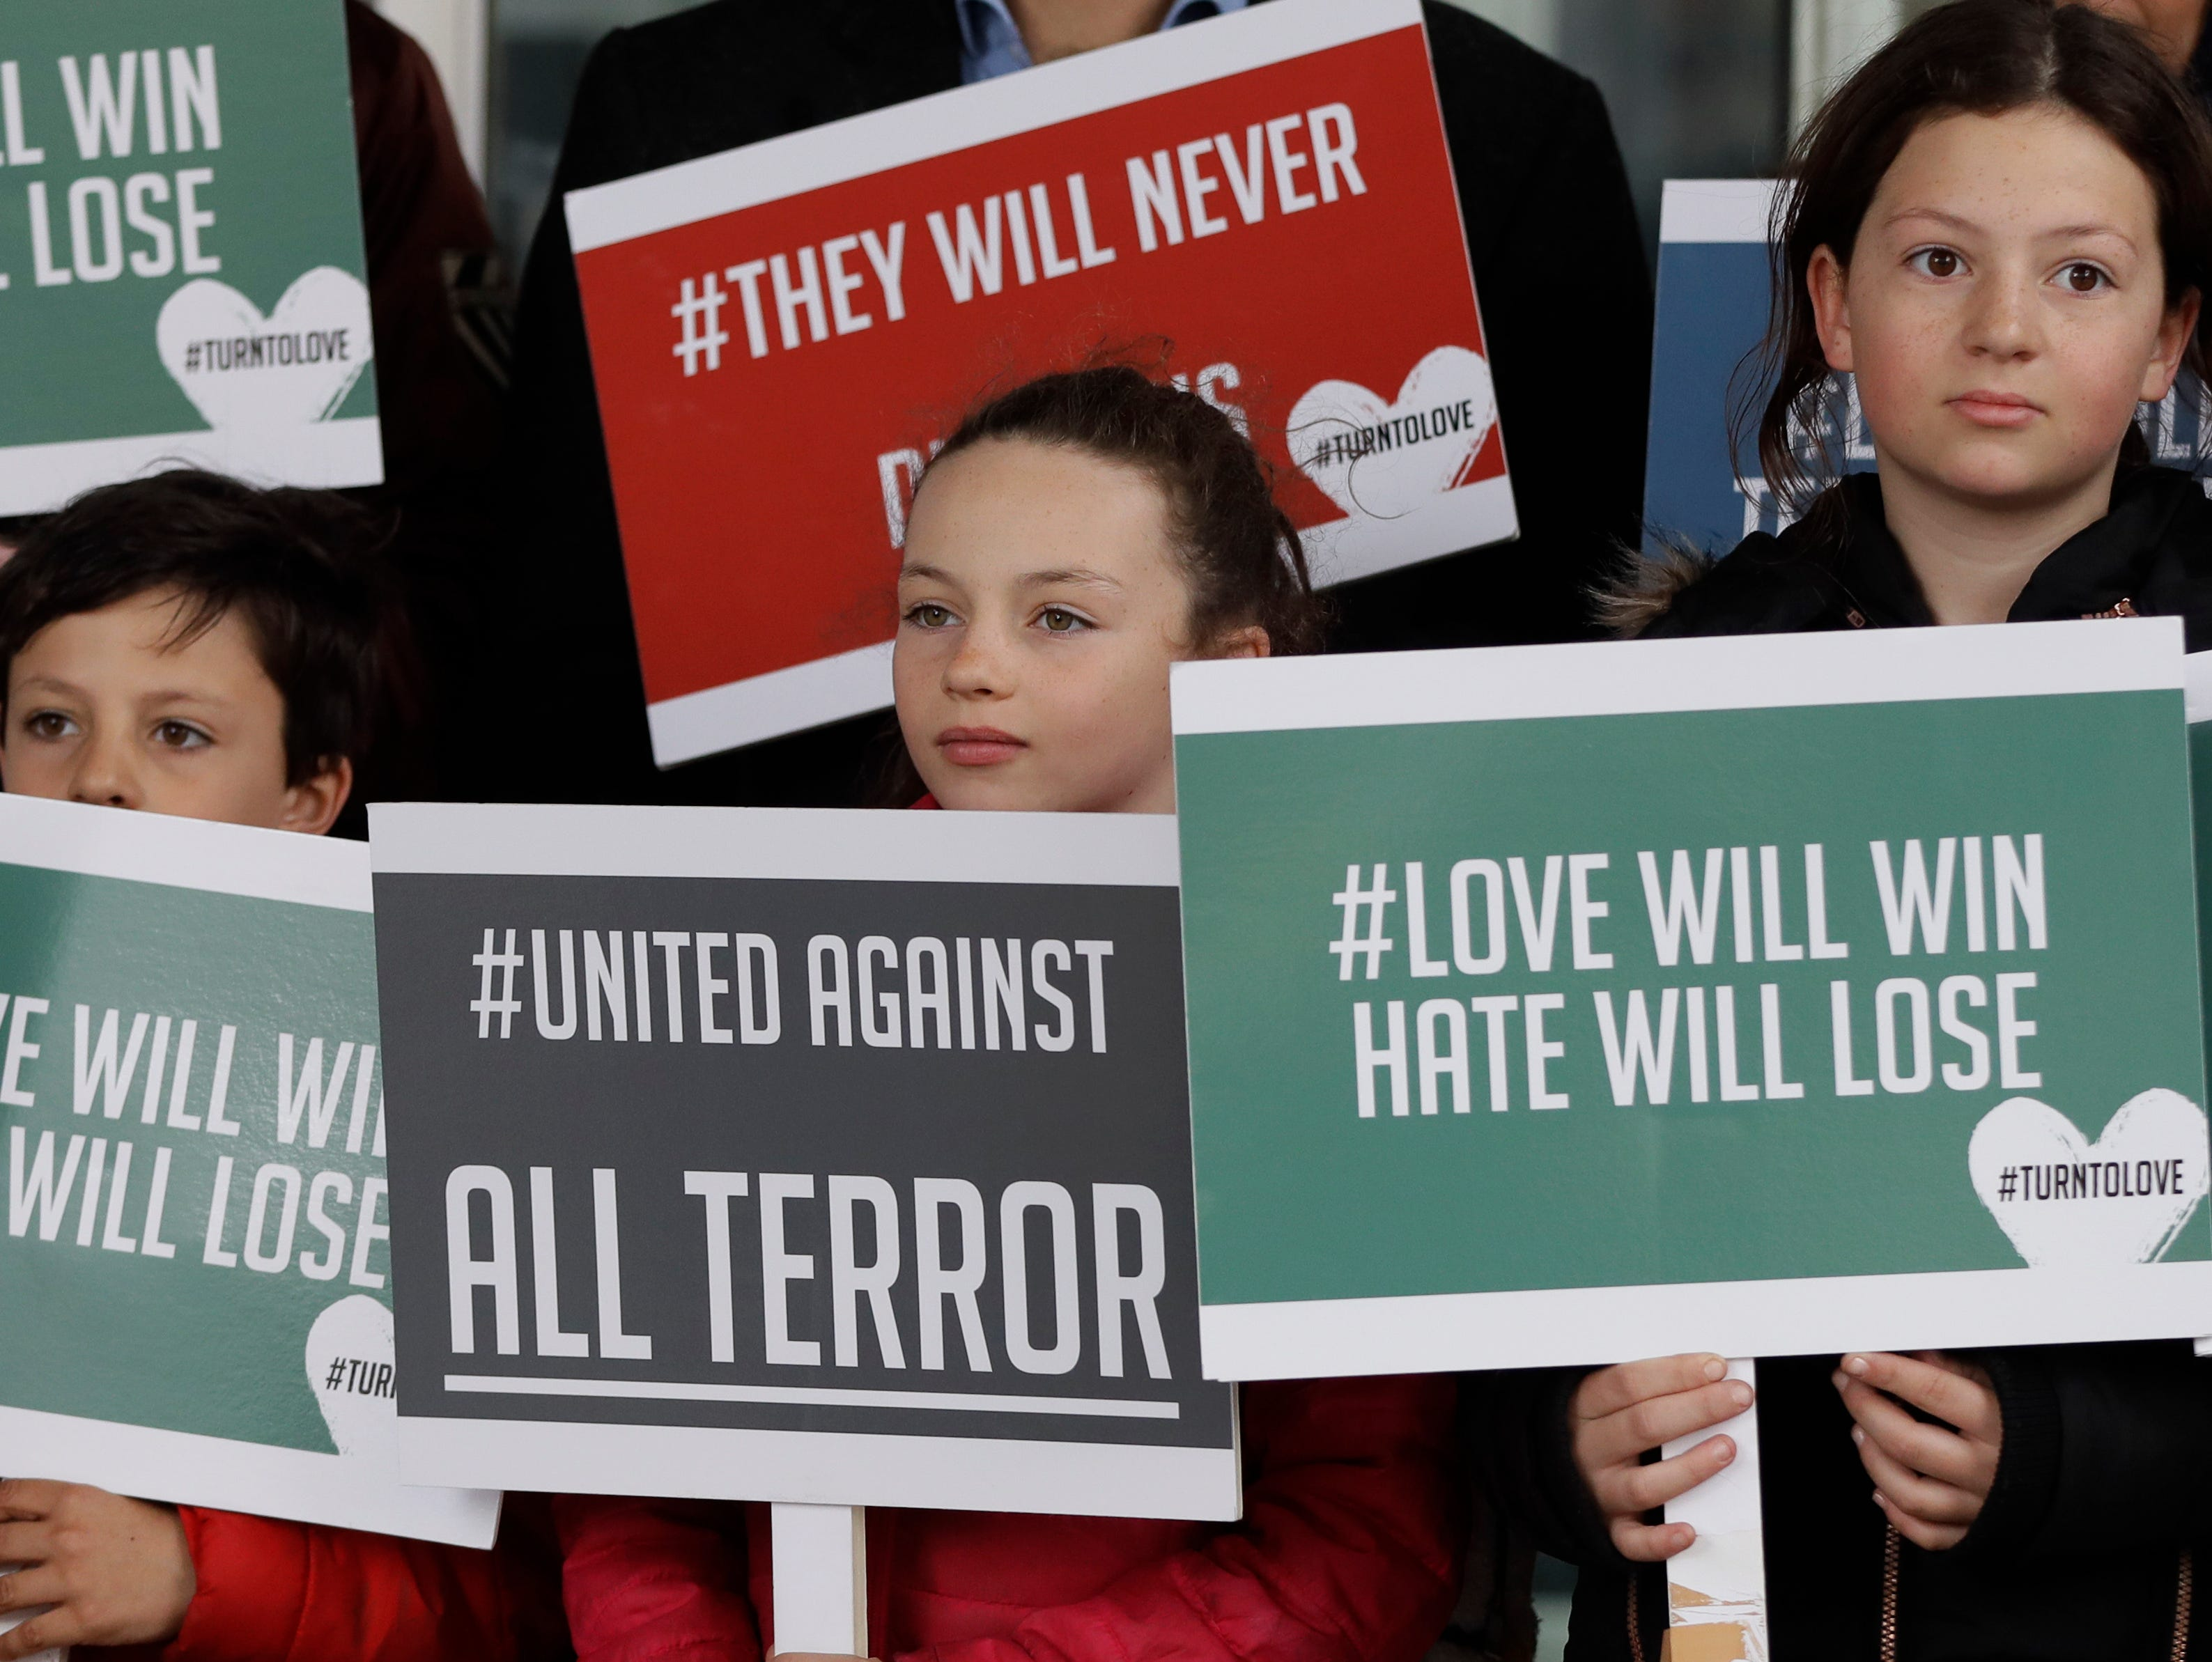 Young demonstrators hold banners from multi-faith group 'Turn to Love' during a vigil at New Zealand House in London, Friday, March 15, 2019.